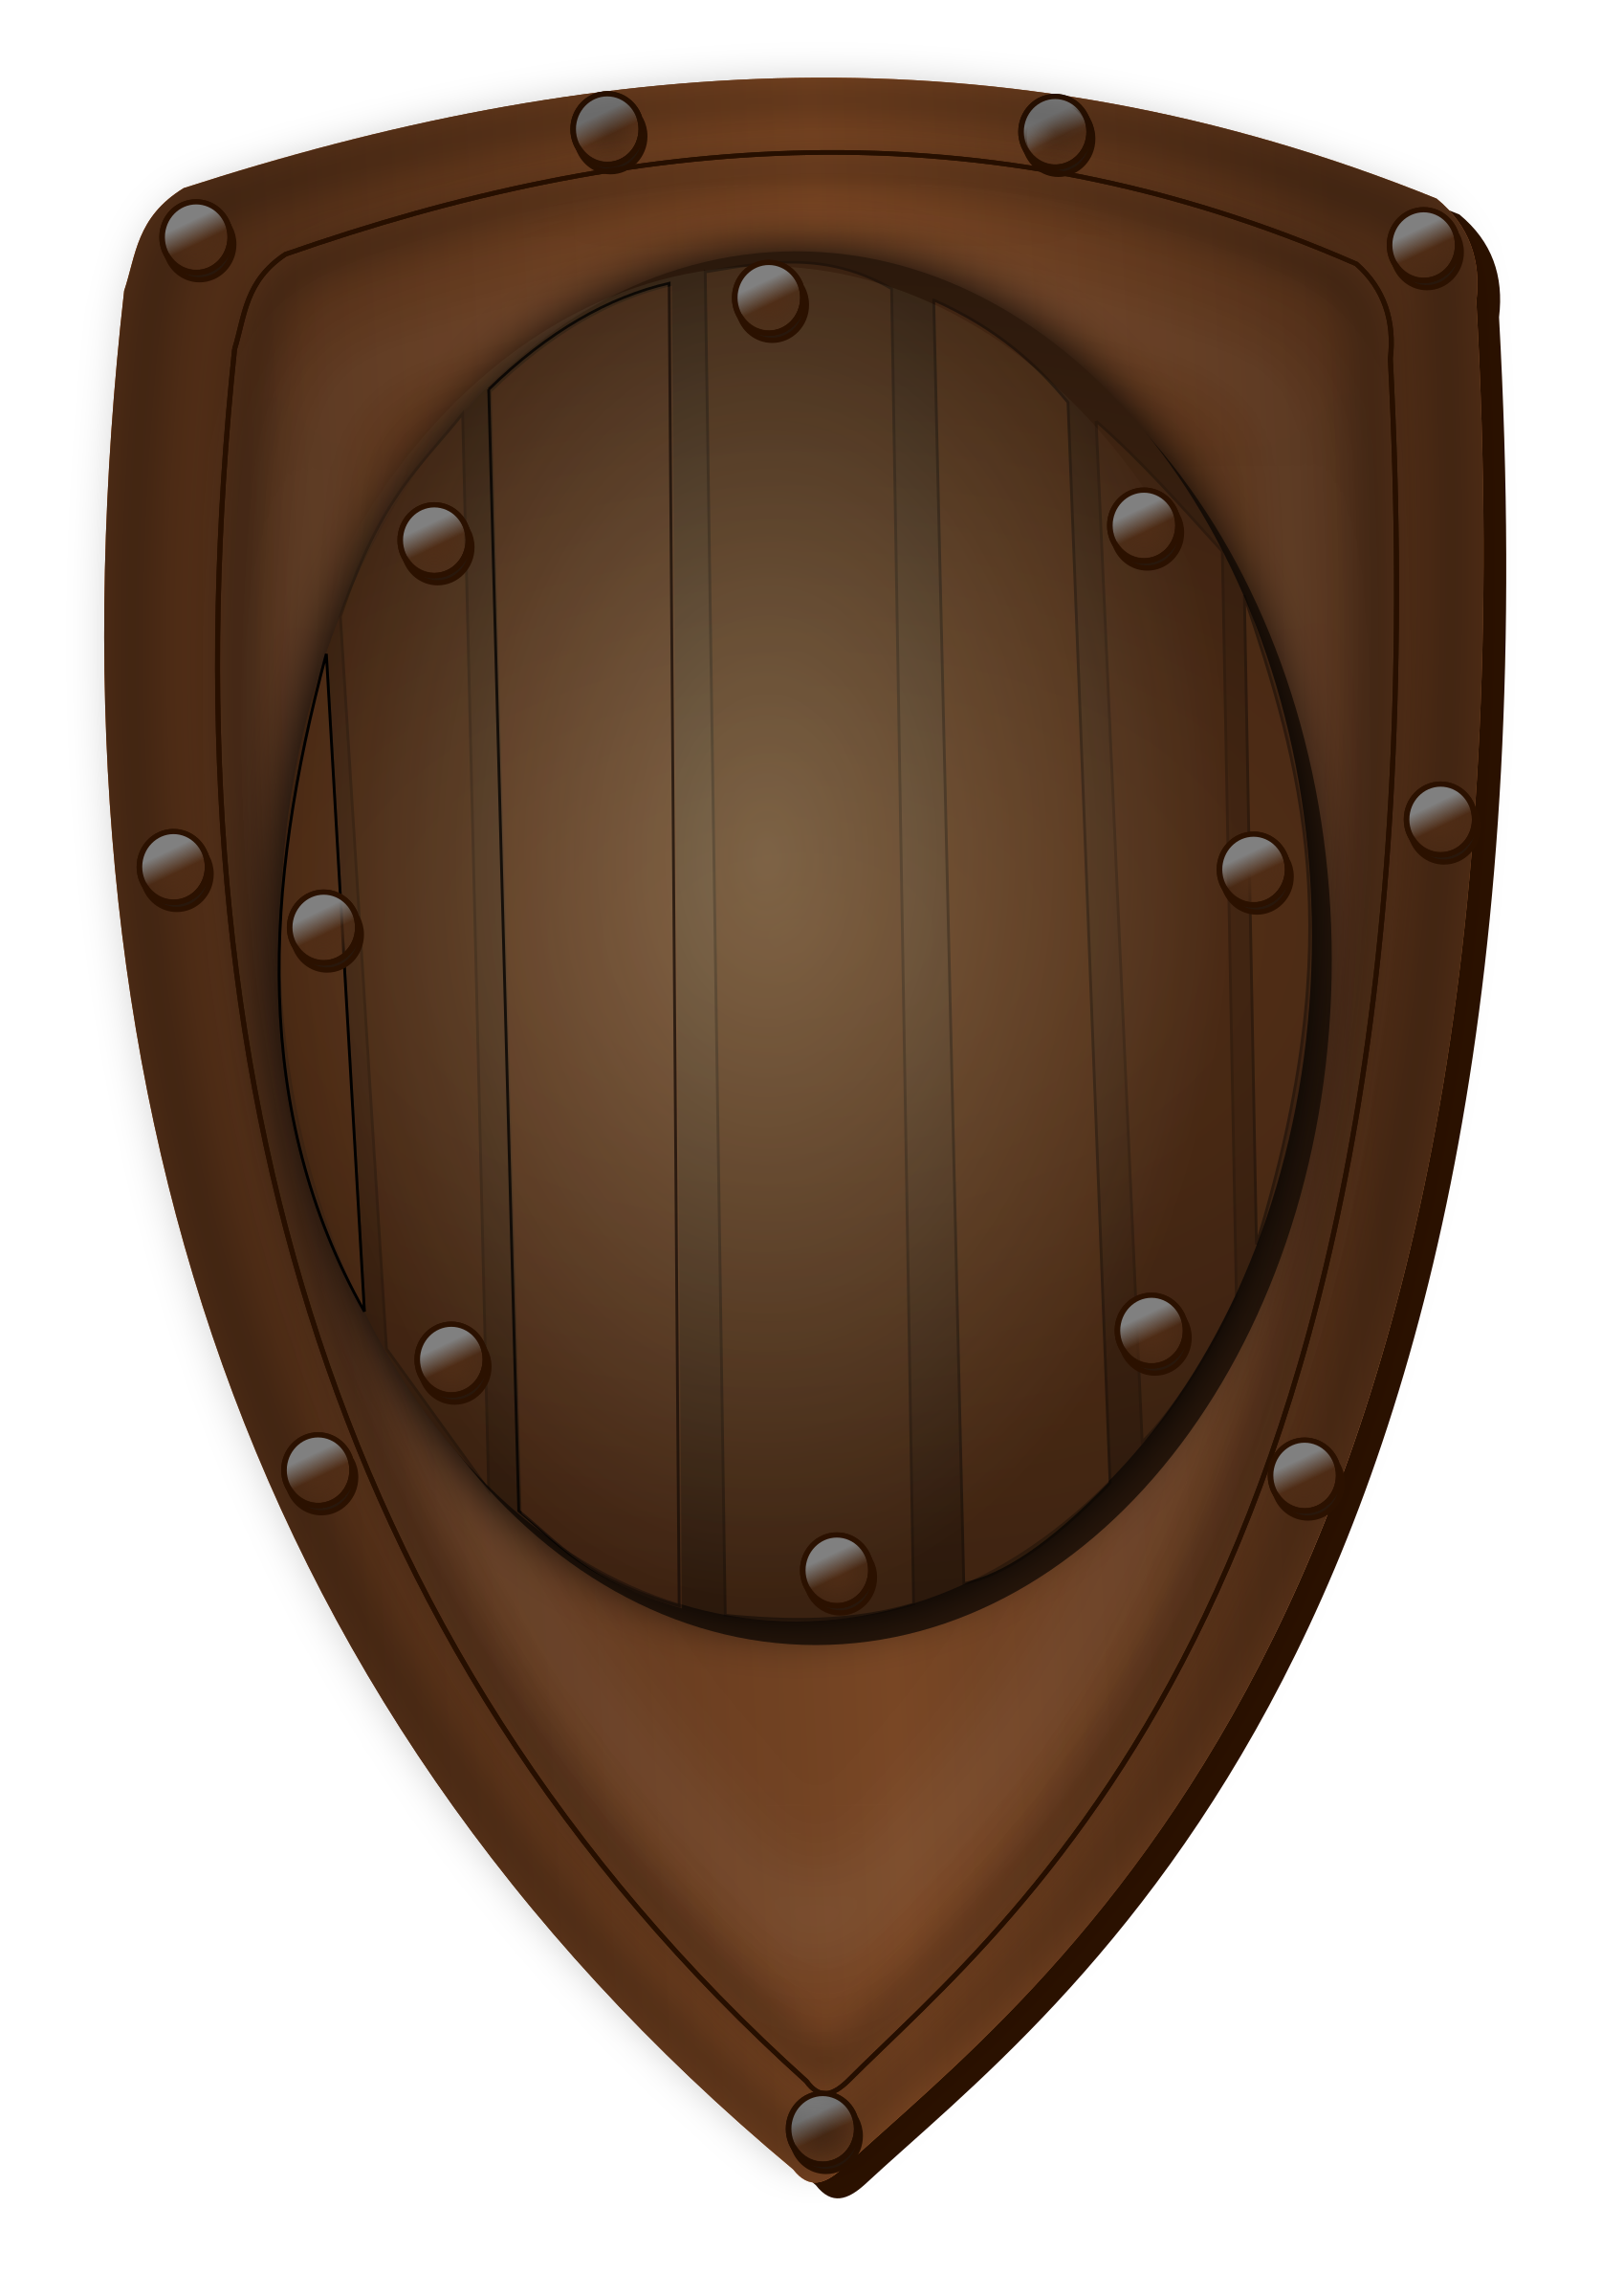 Brown clipart shield Shield hatalar205 shield by Clipart